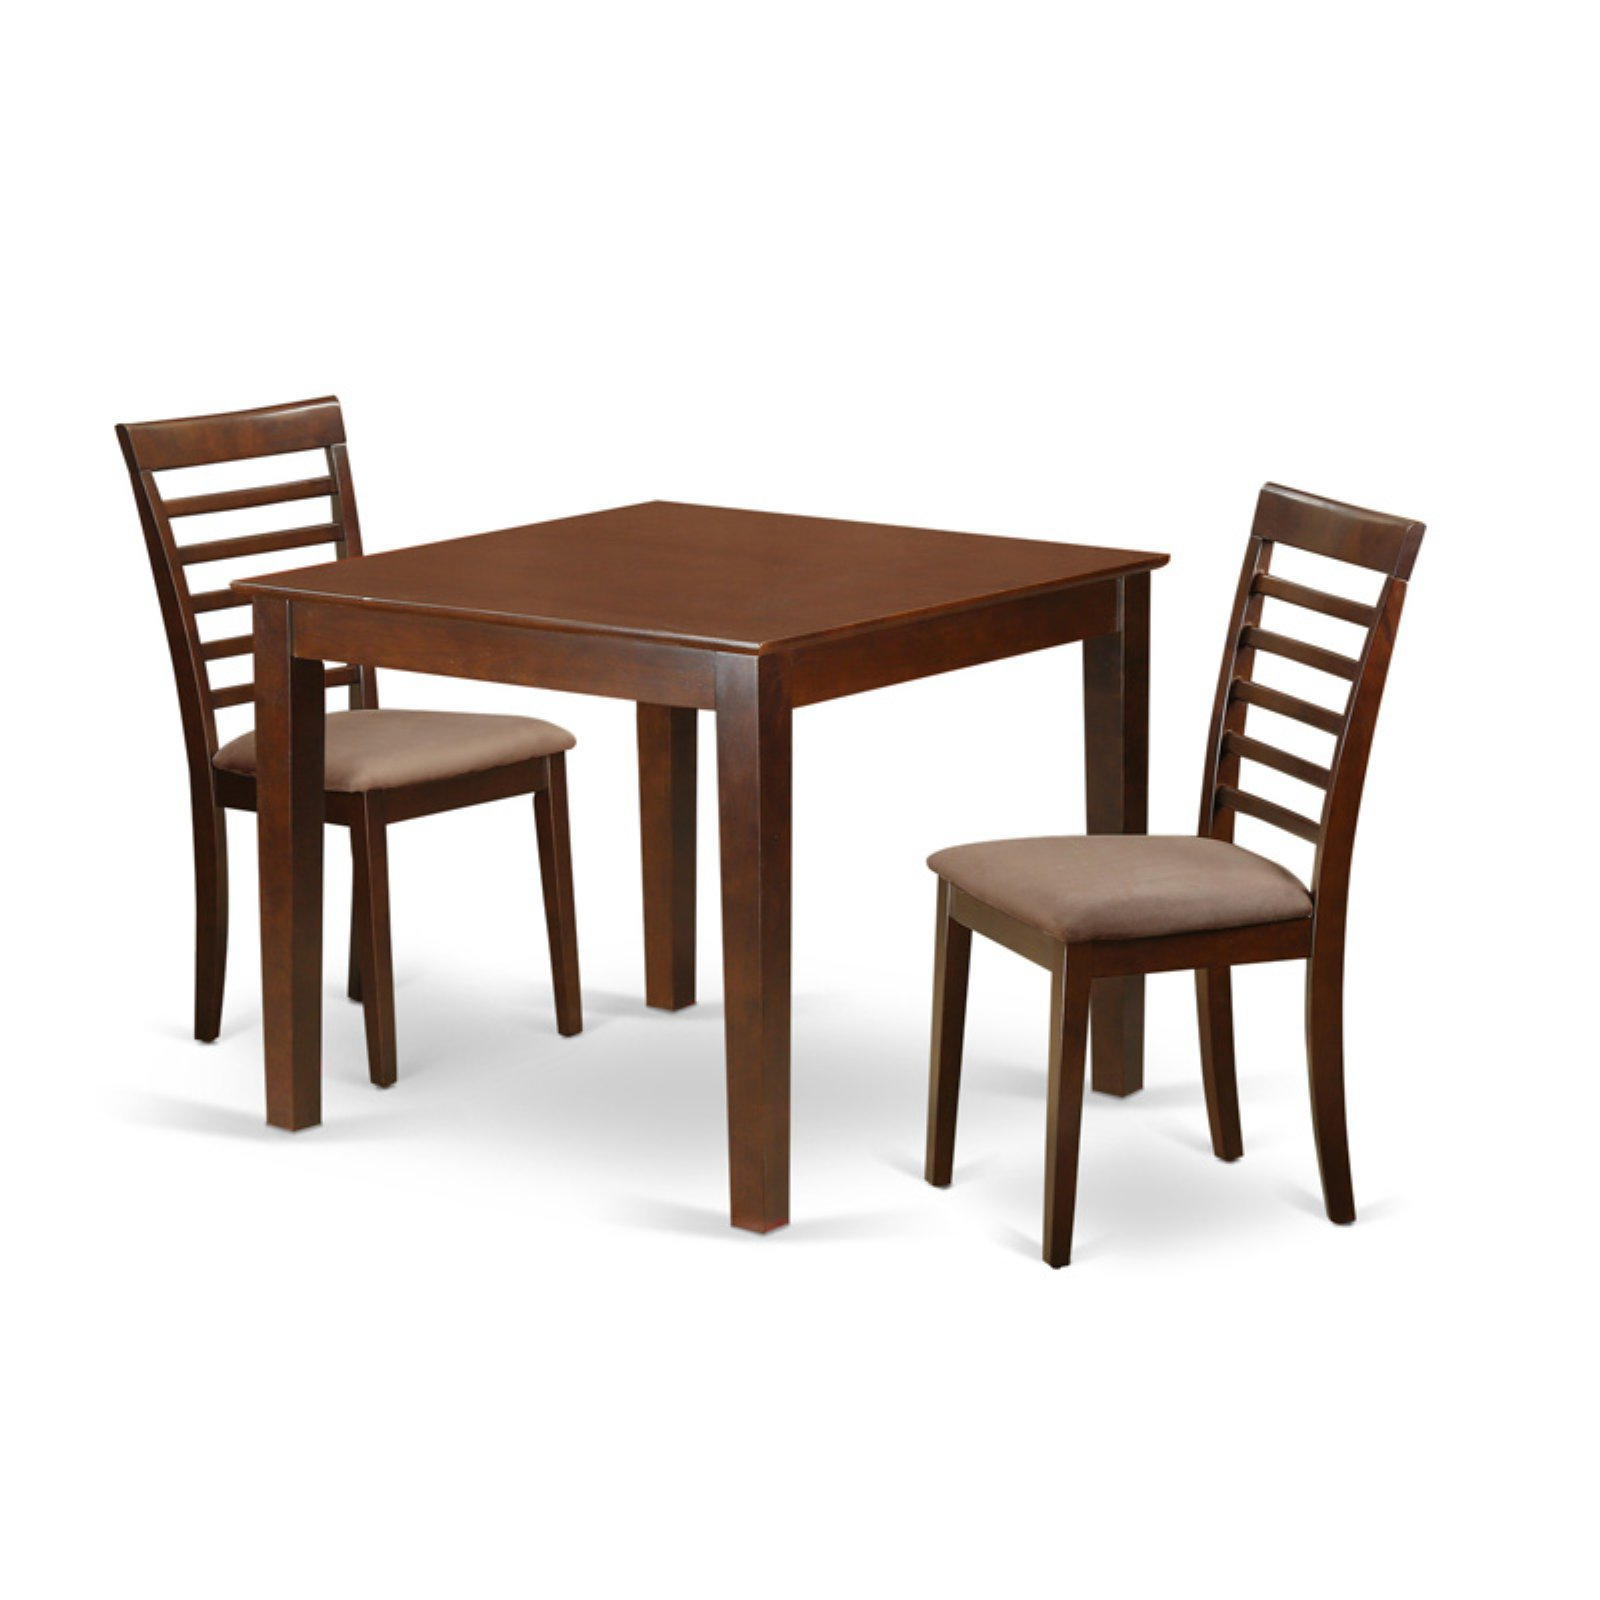 Recent Smyrna 3 Piece Dining Sets Inside East West Furniture 3 Piece Straight Ladderback Breakfast Nook (View 13 of 25)